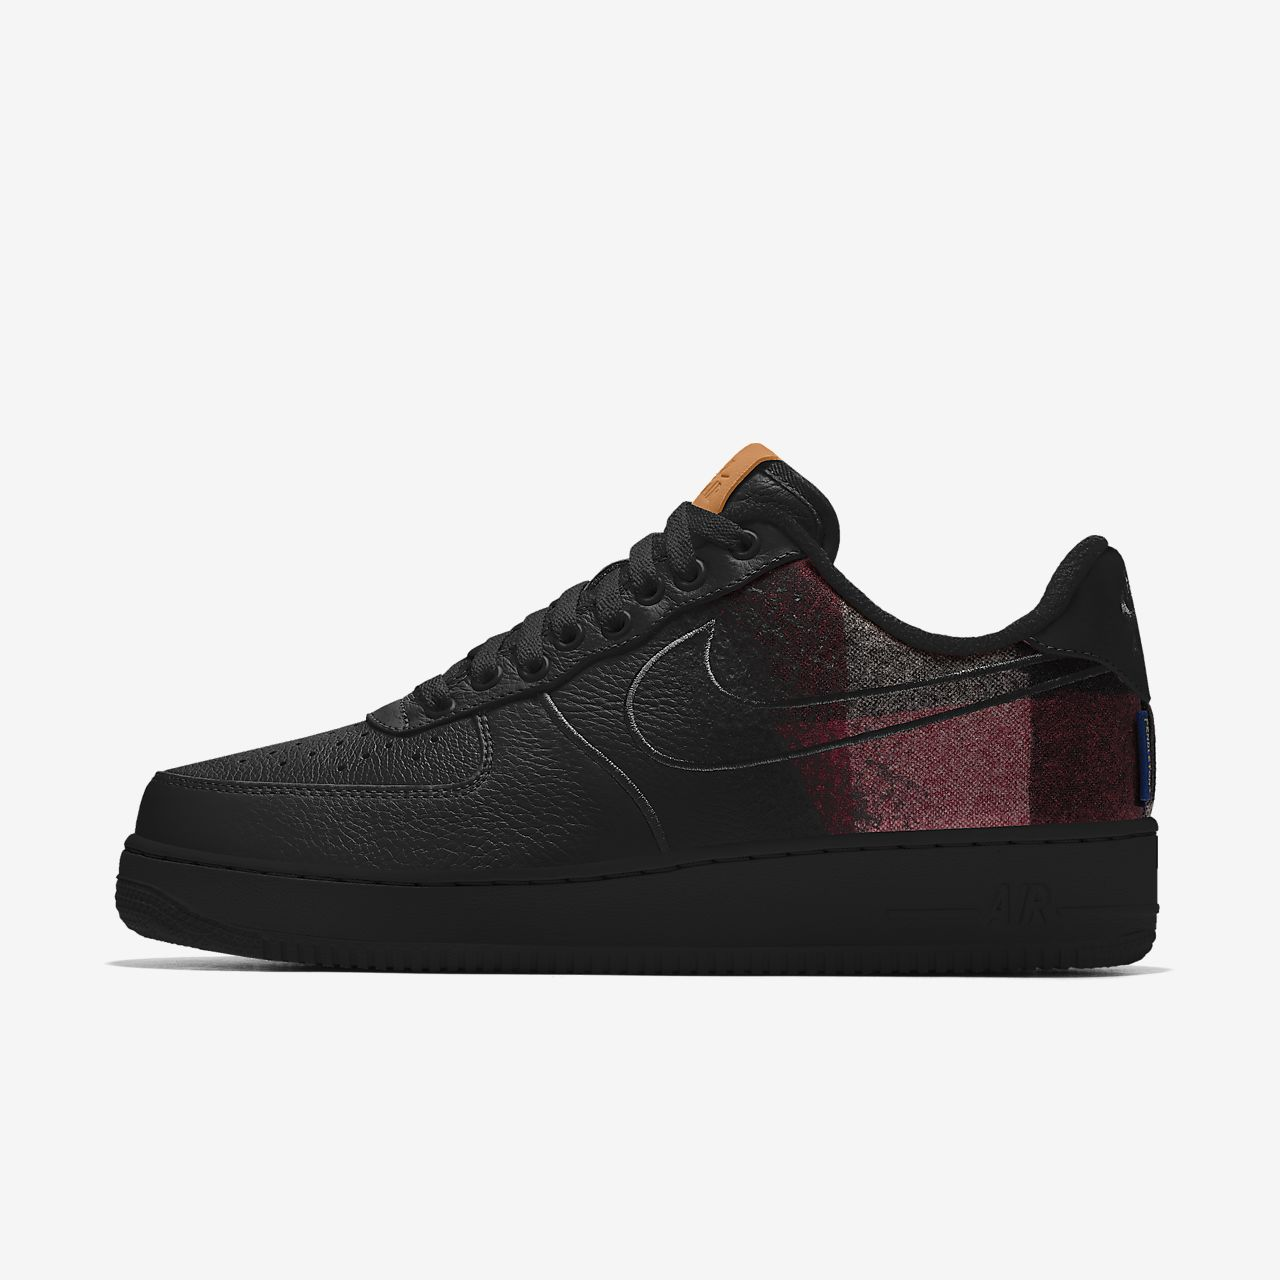 Nike Air Force 1 Low Pendleton By You personalisierbarer Schuh